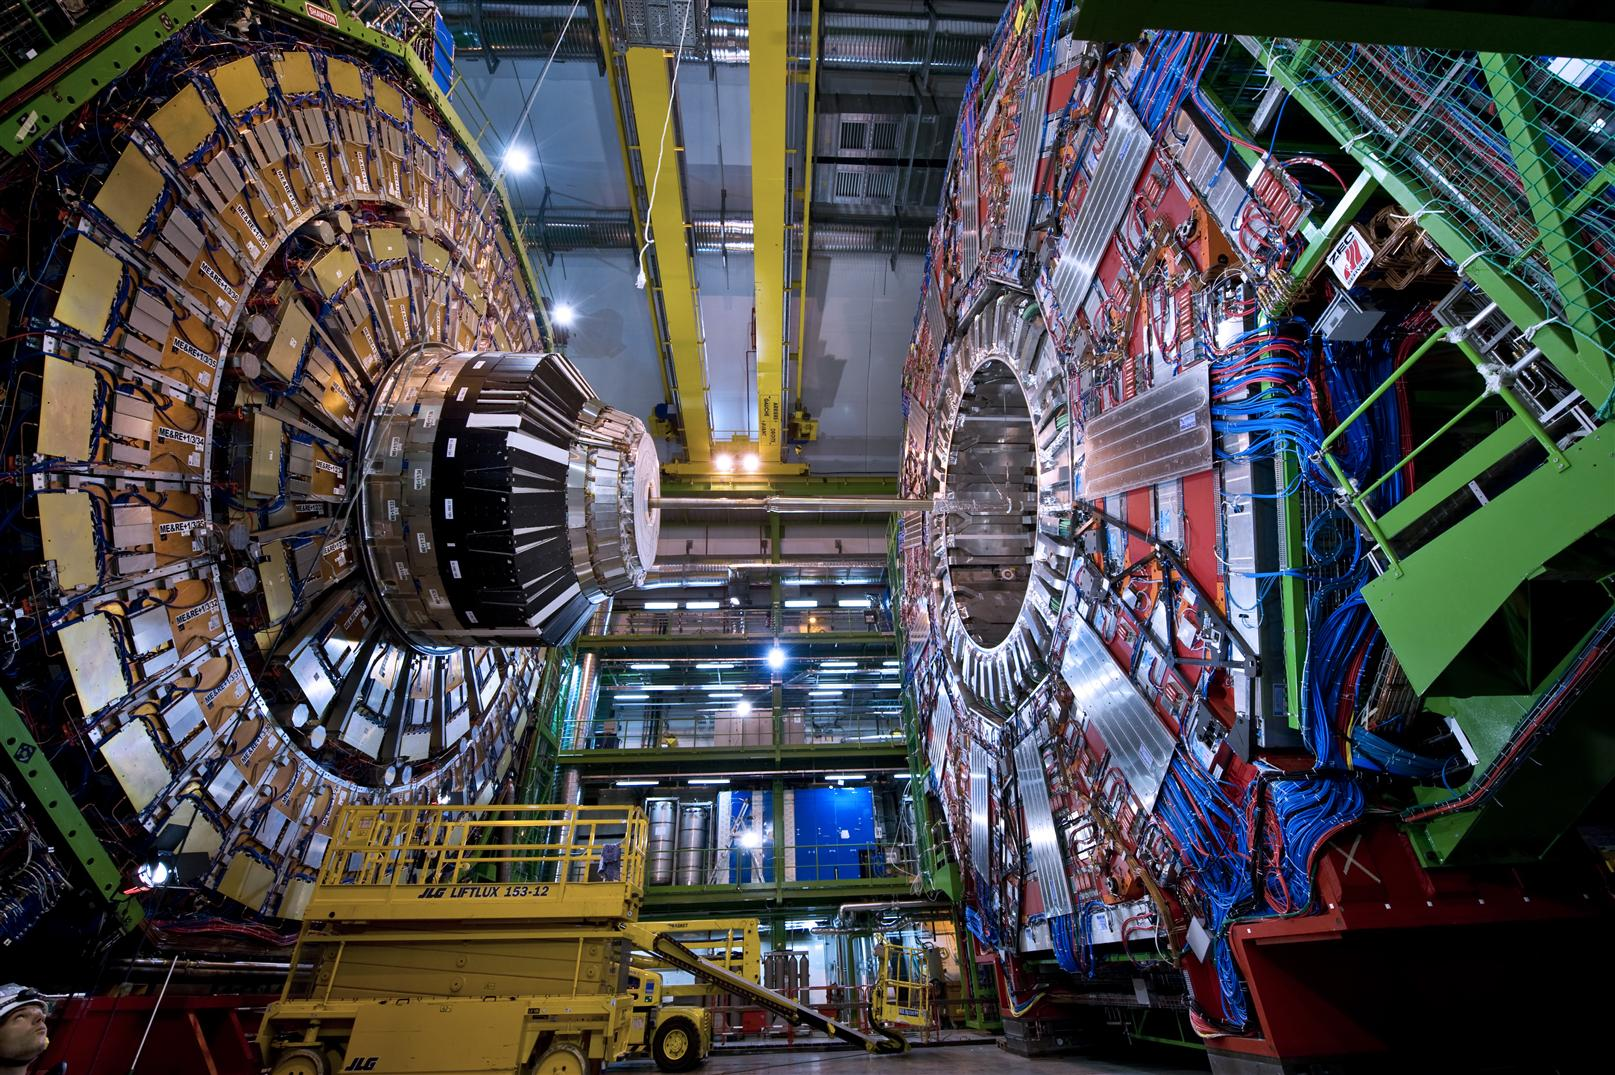 Unl Physicists Expand Roles With Reboot Of Large Hadron